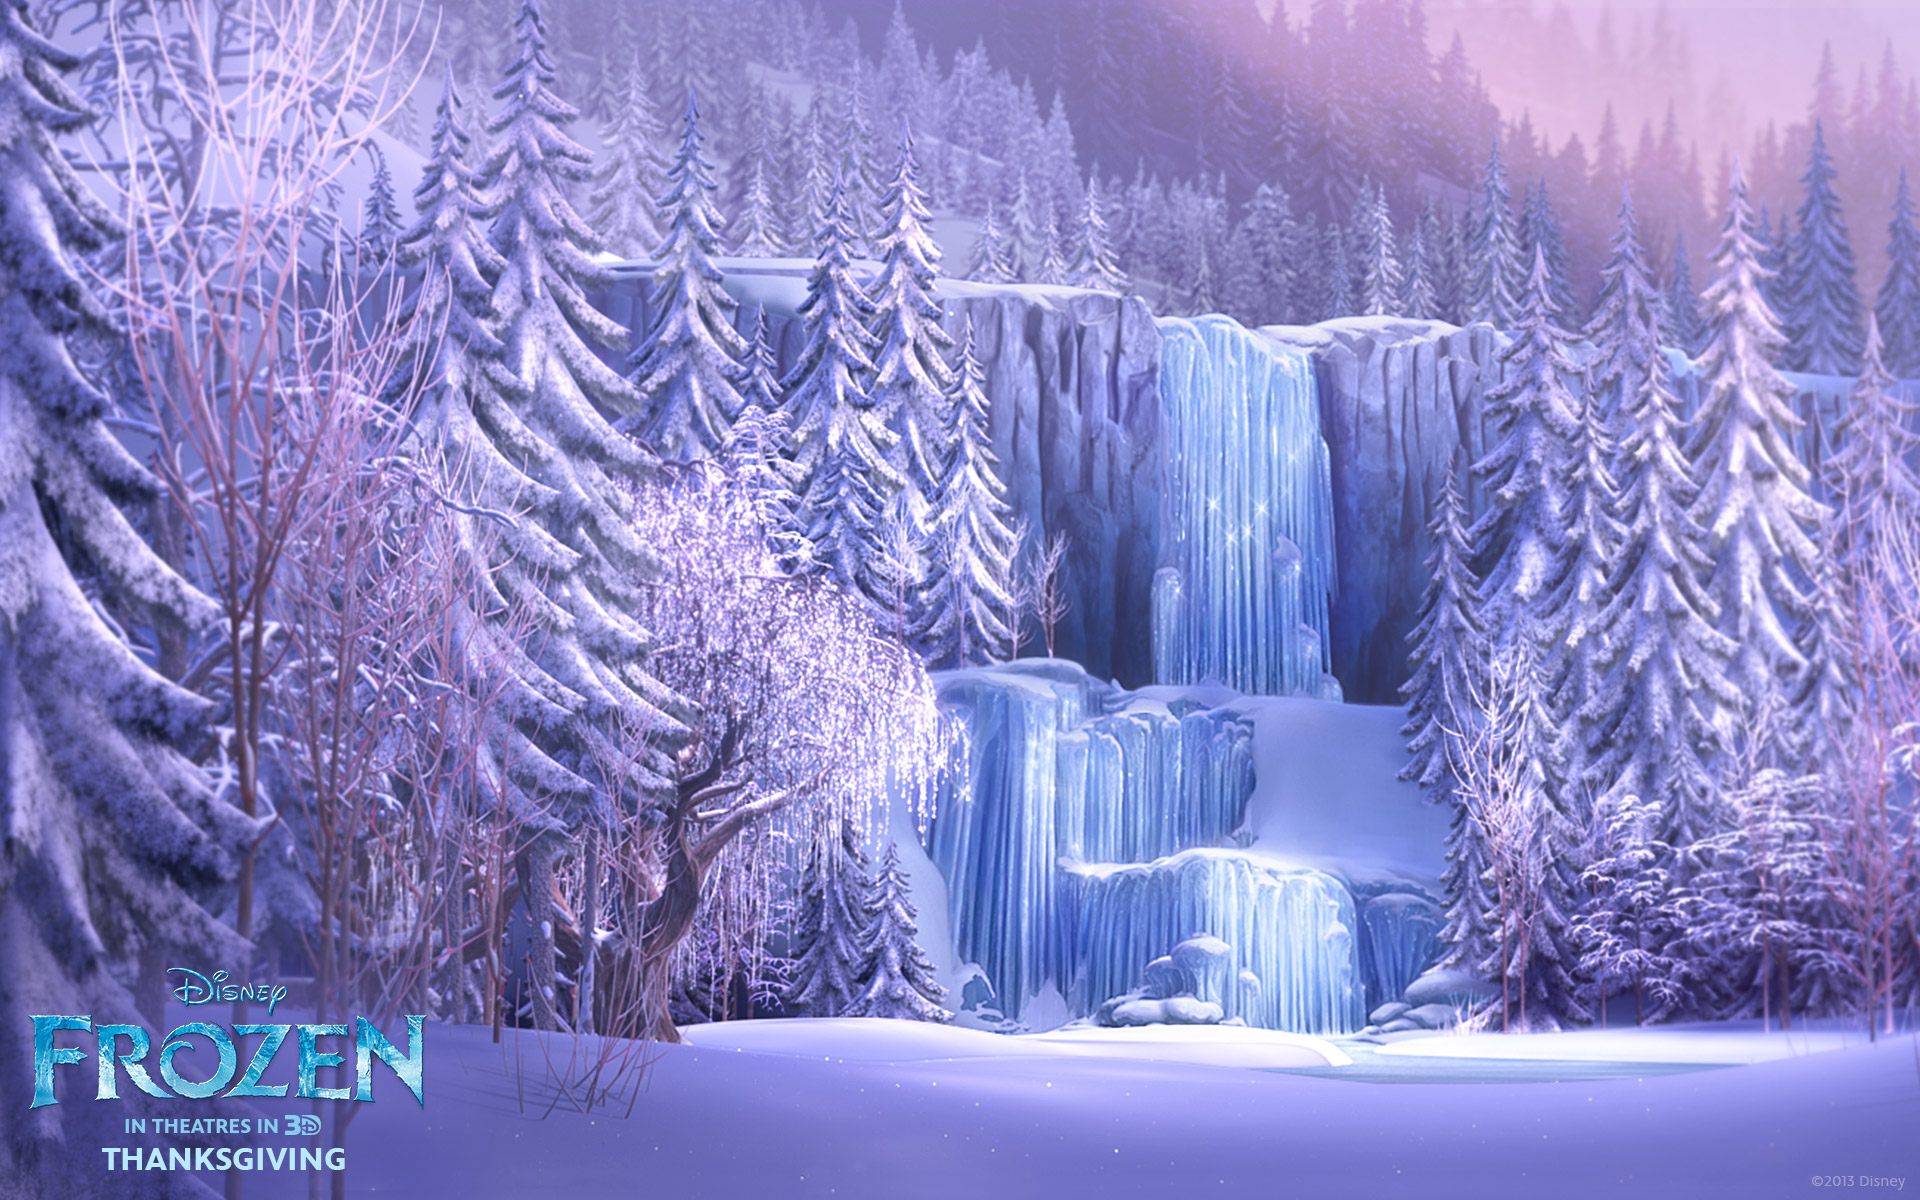 Frozen Waterfall from Disneys Frozen wallpaper   Click picture for 1920x1200